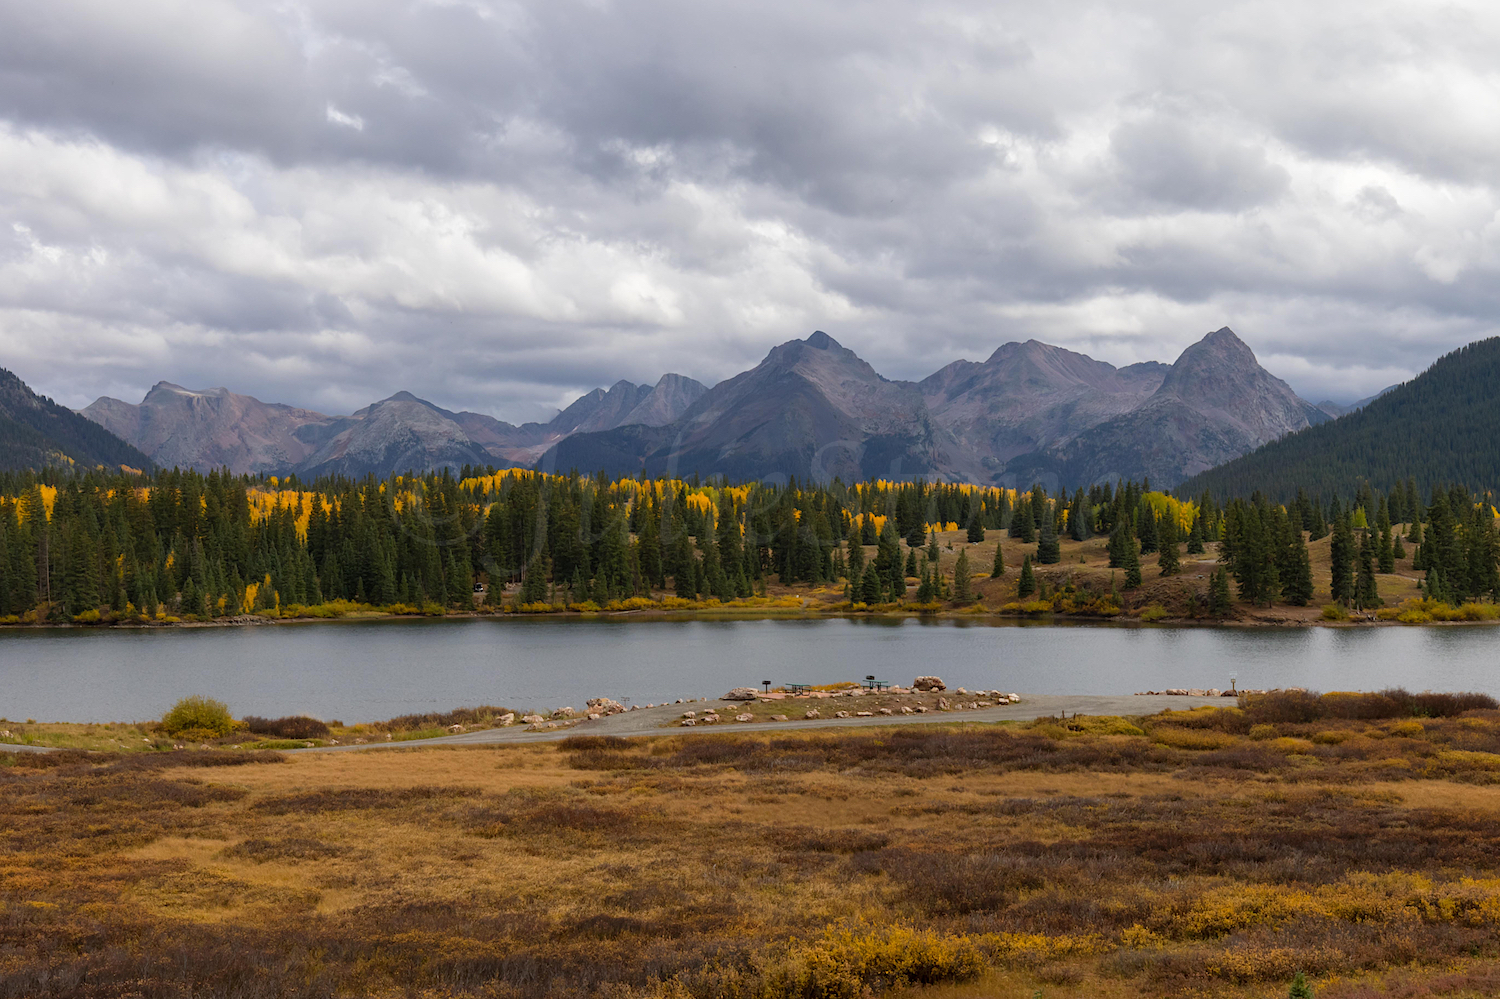 Molas Pass, Image # 8008